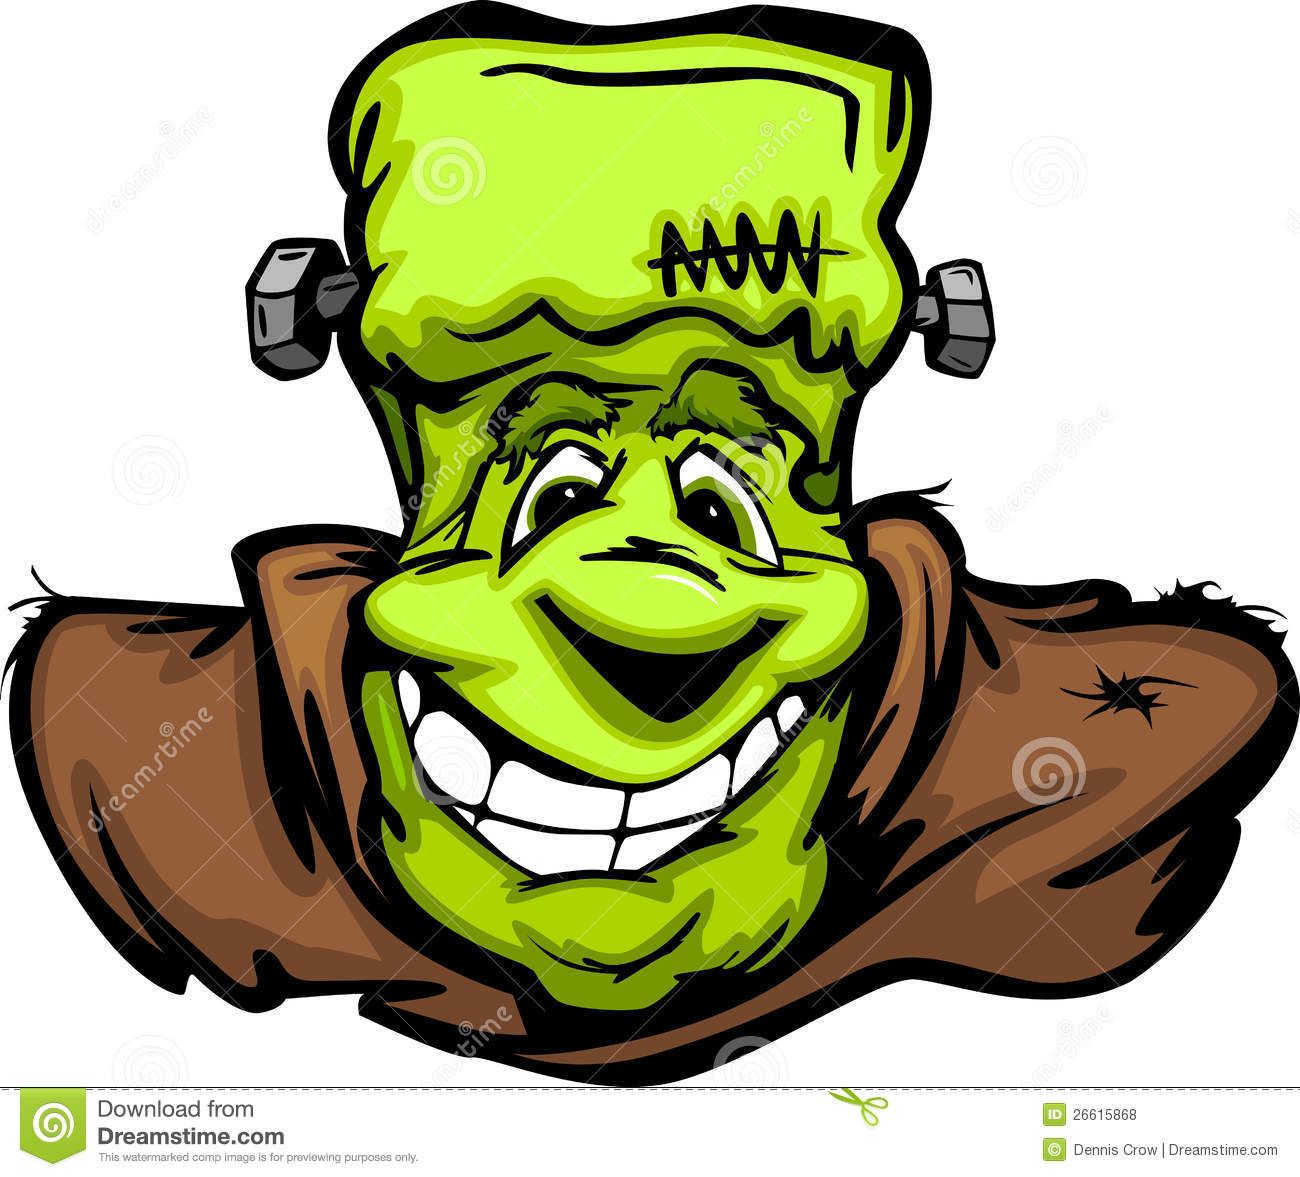 happy frankenstein halloween monster head cartoon royalty free stock photos image 26615868. Black Bedroom Furniture Sets. Home Design Ideas